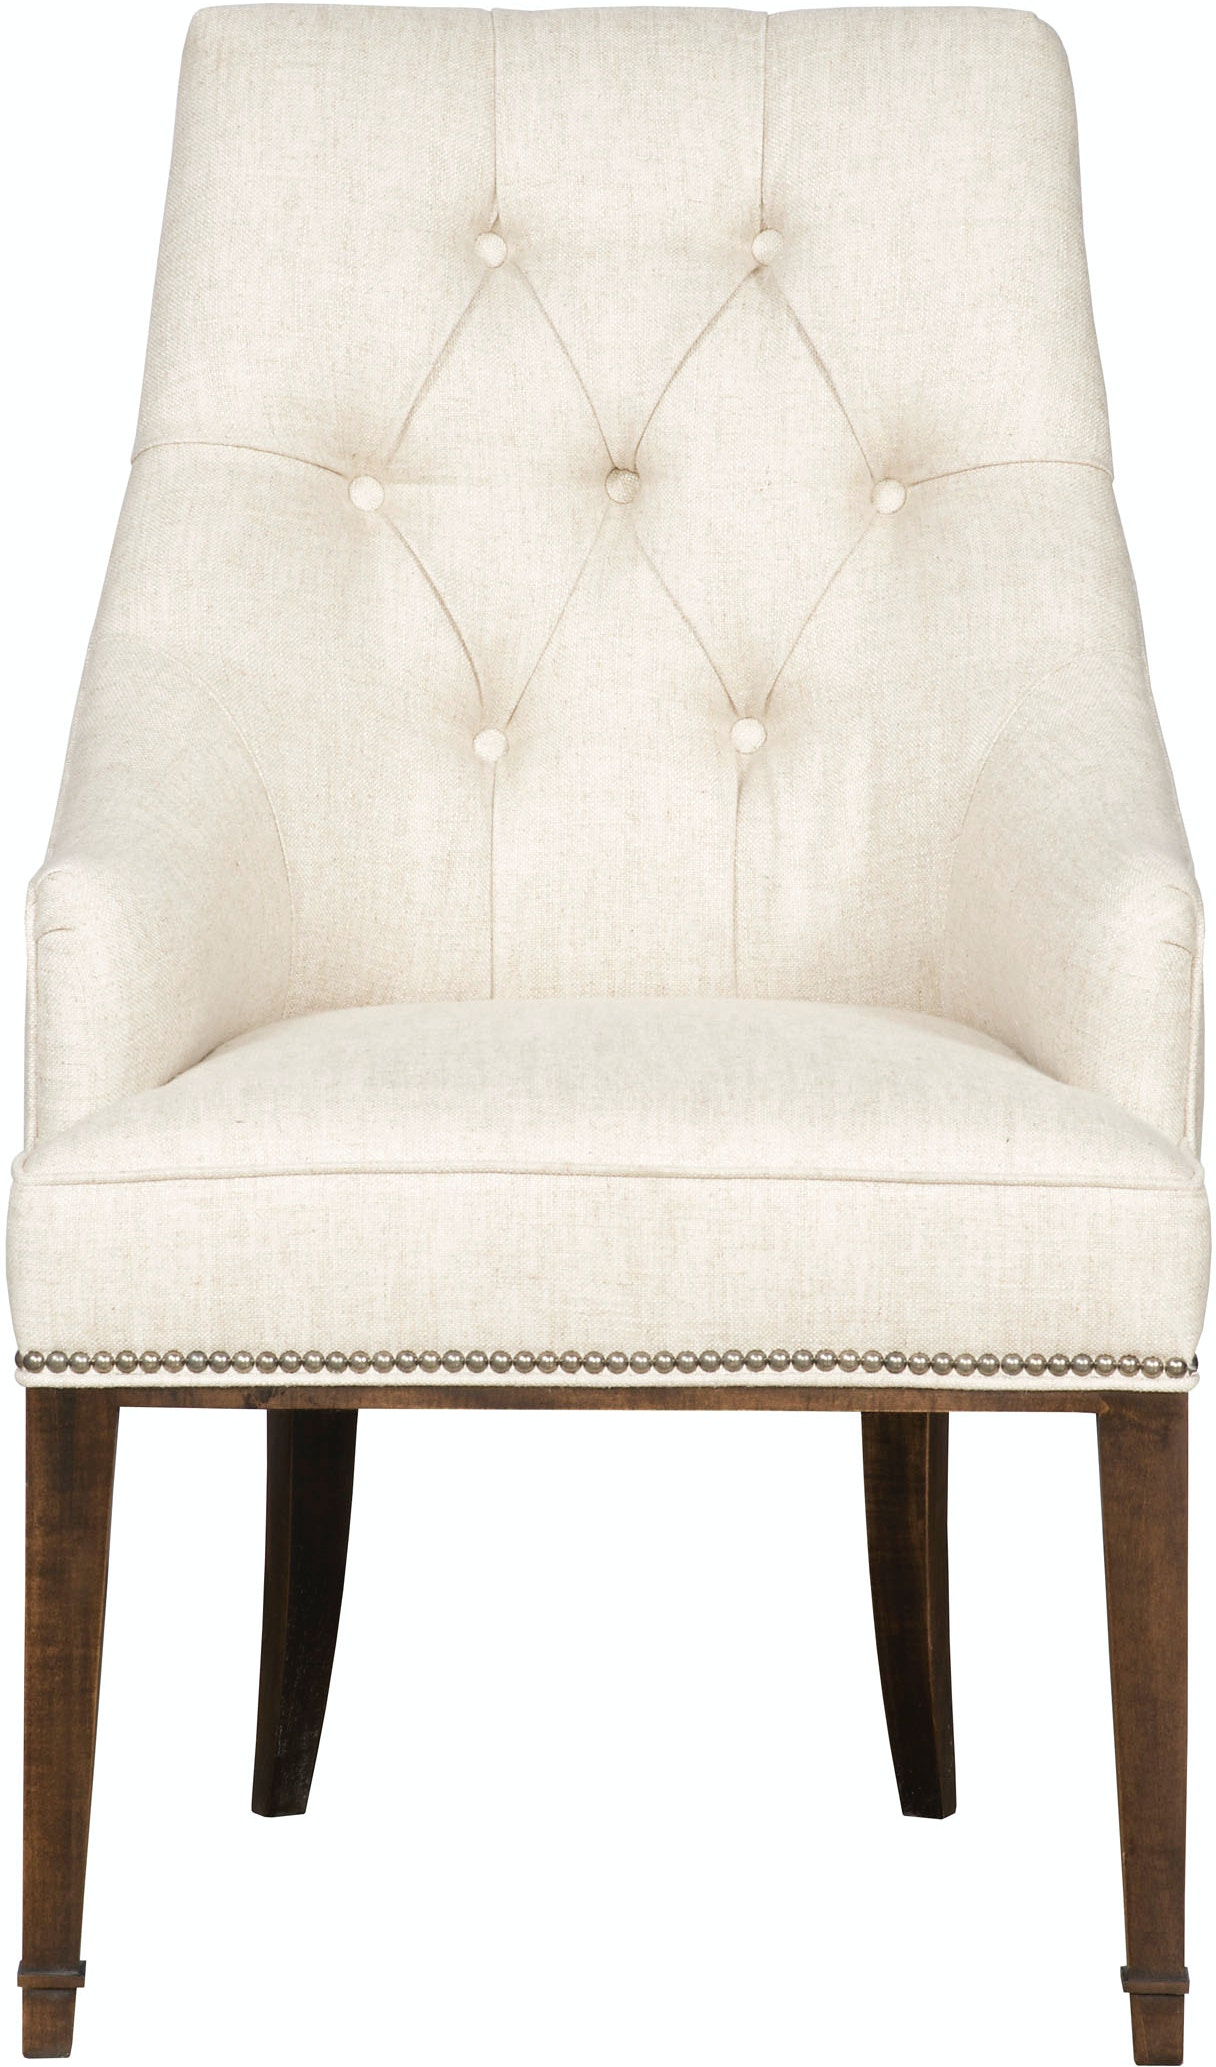 Vanguard Dining Room Brinley Tufted Arm Chair W780A Whitley